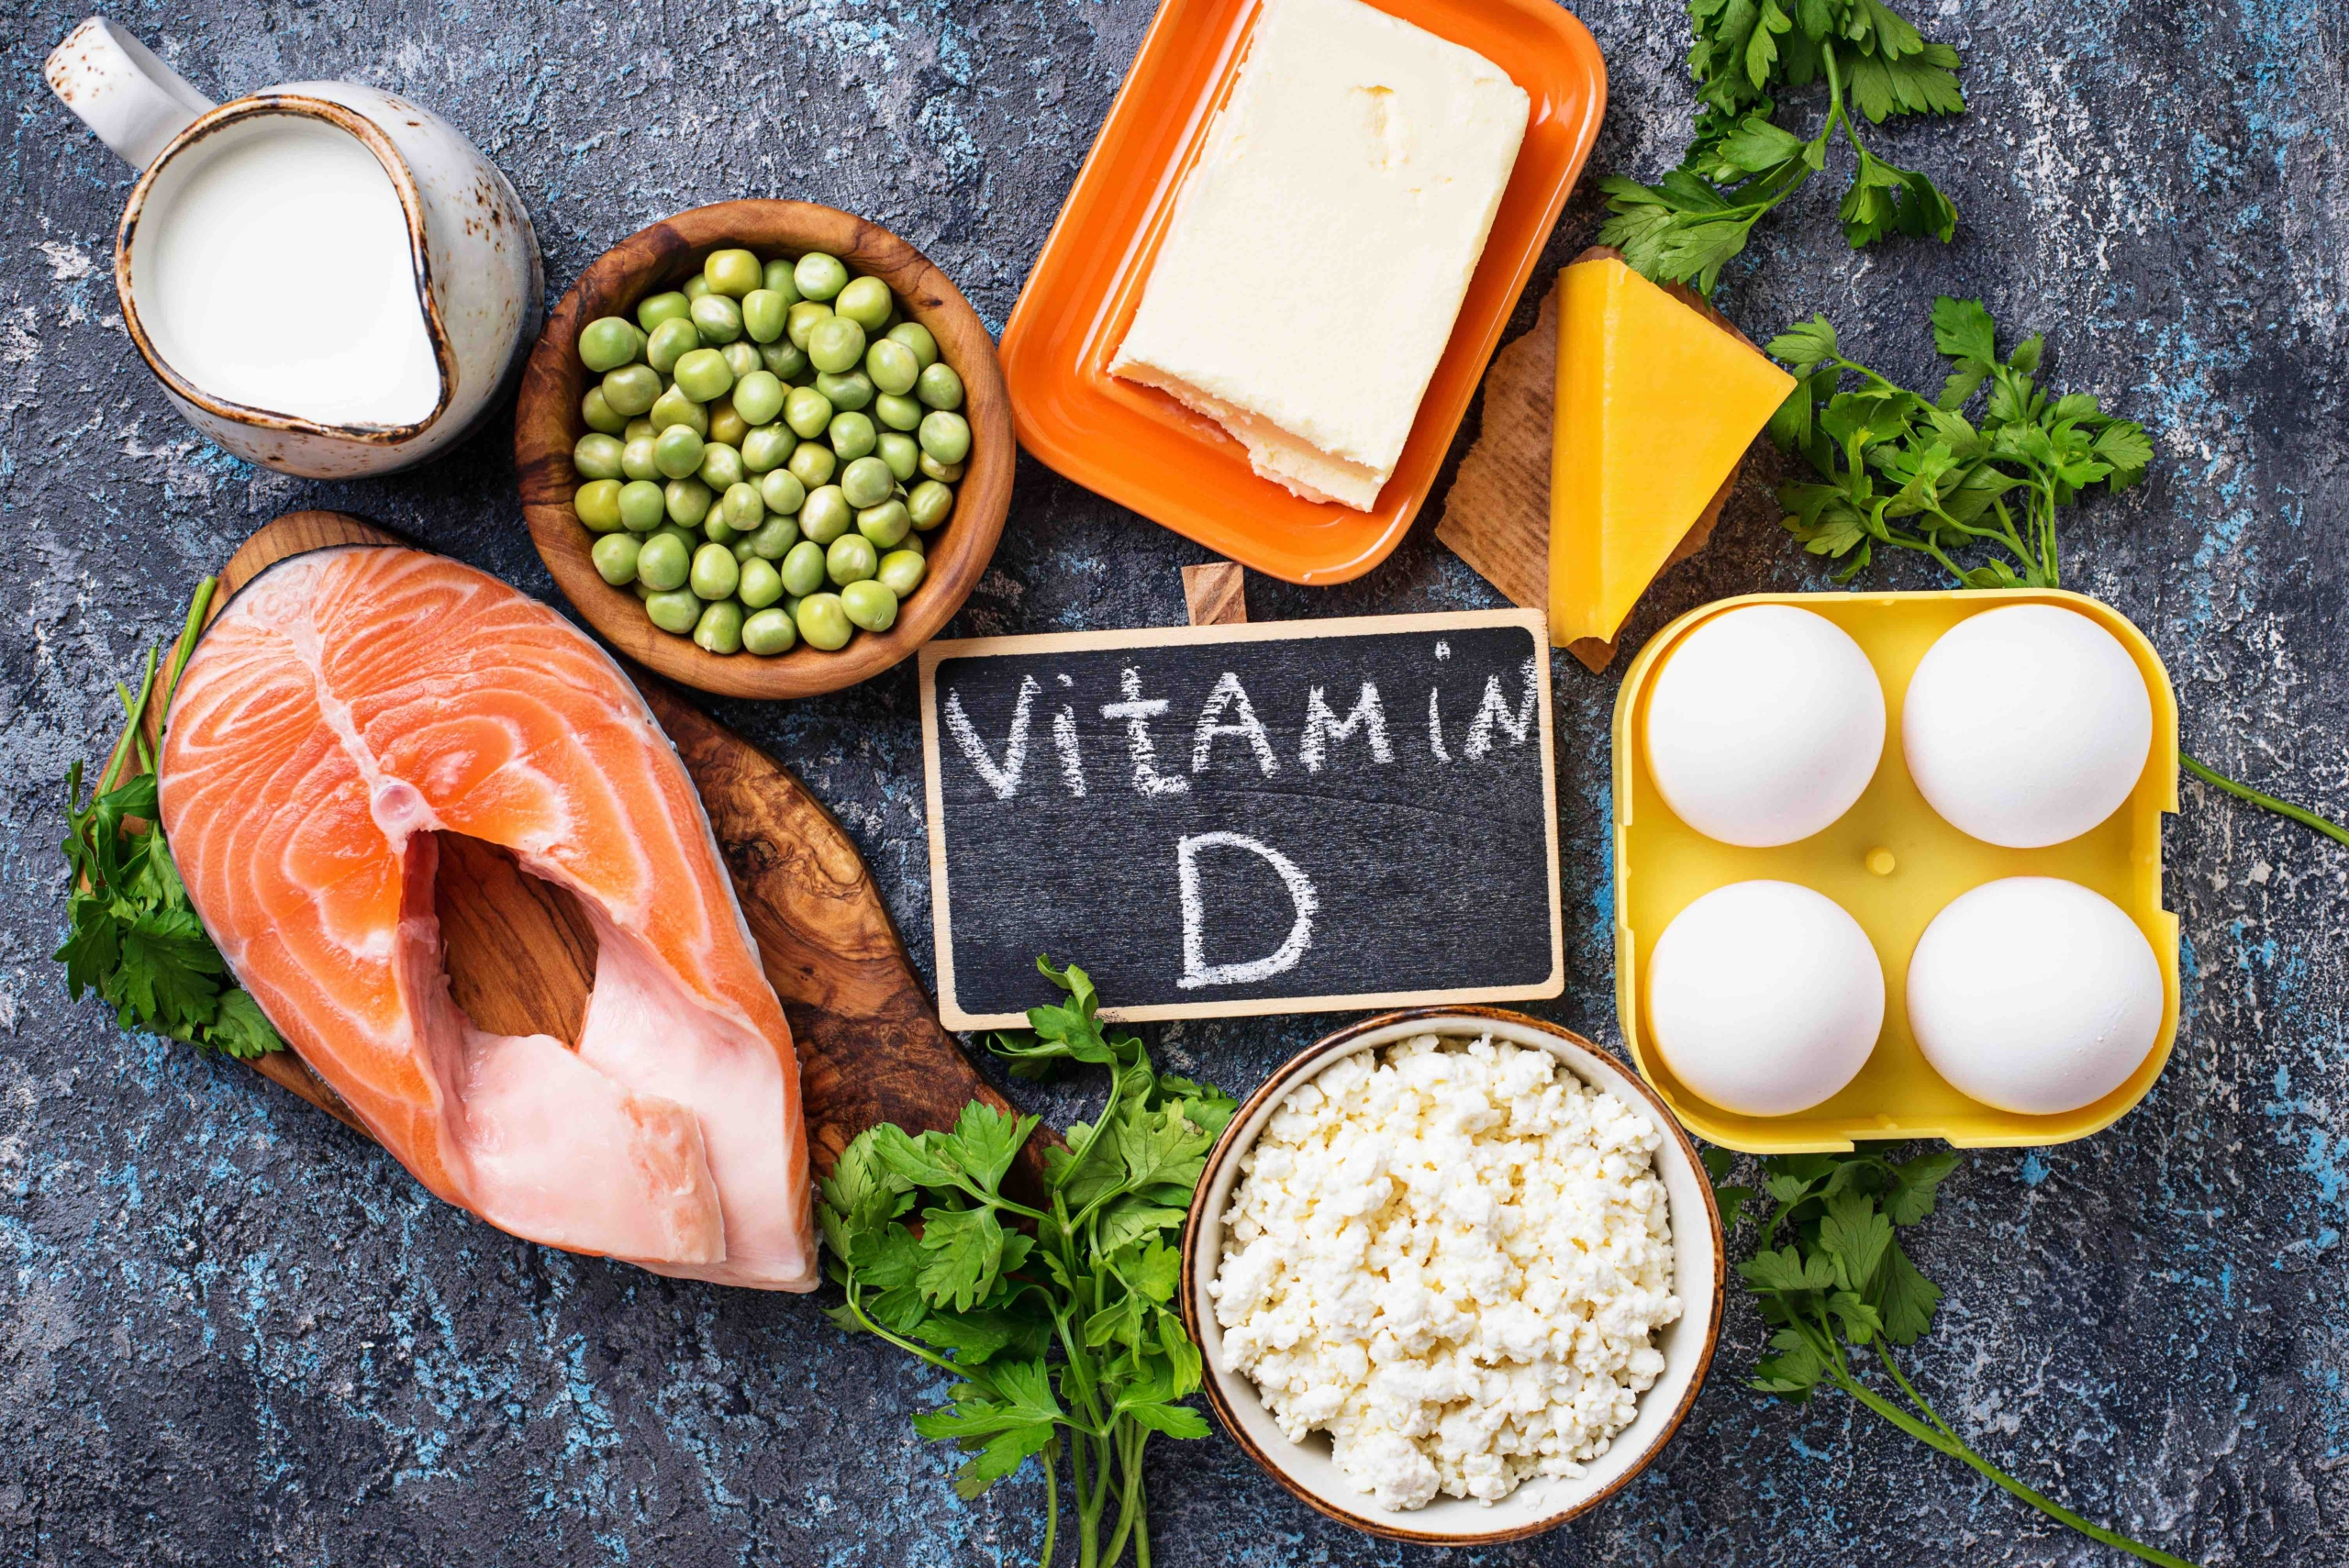 Healthy foods inlucding salmon, peas, cheese, eggs, vitamin D sign